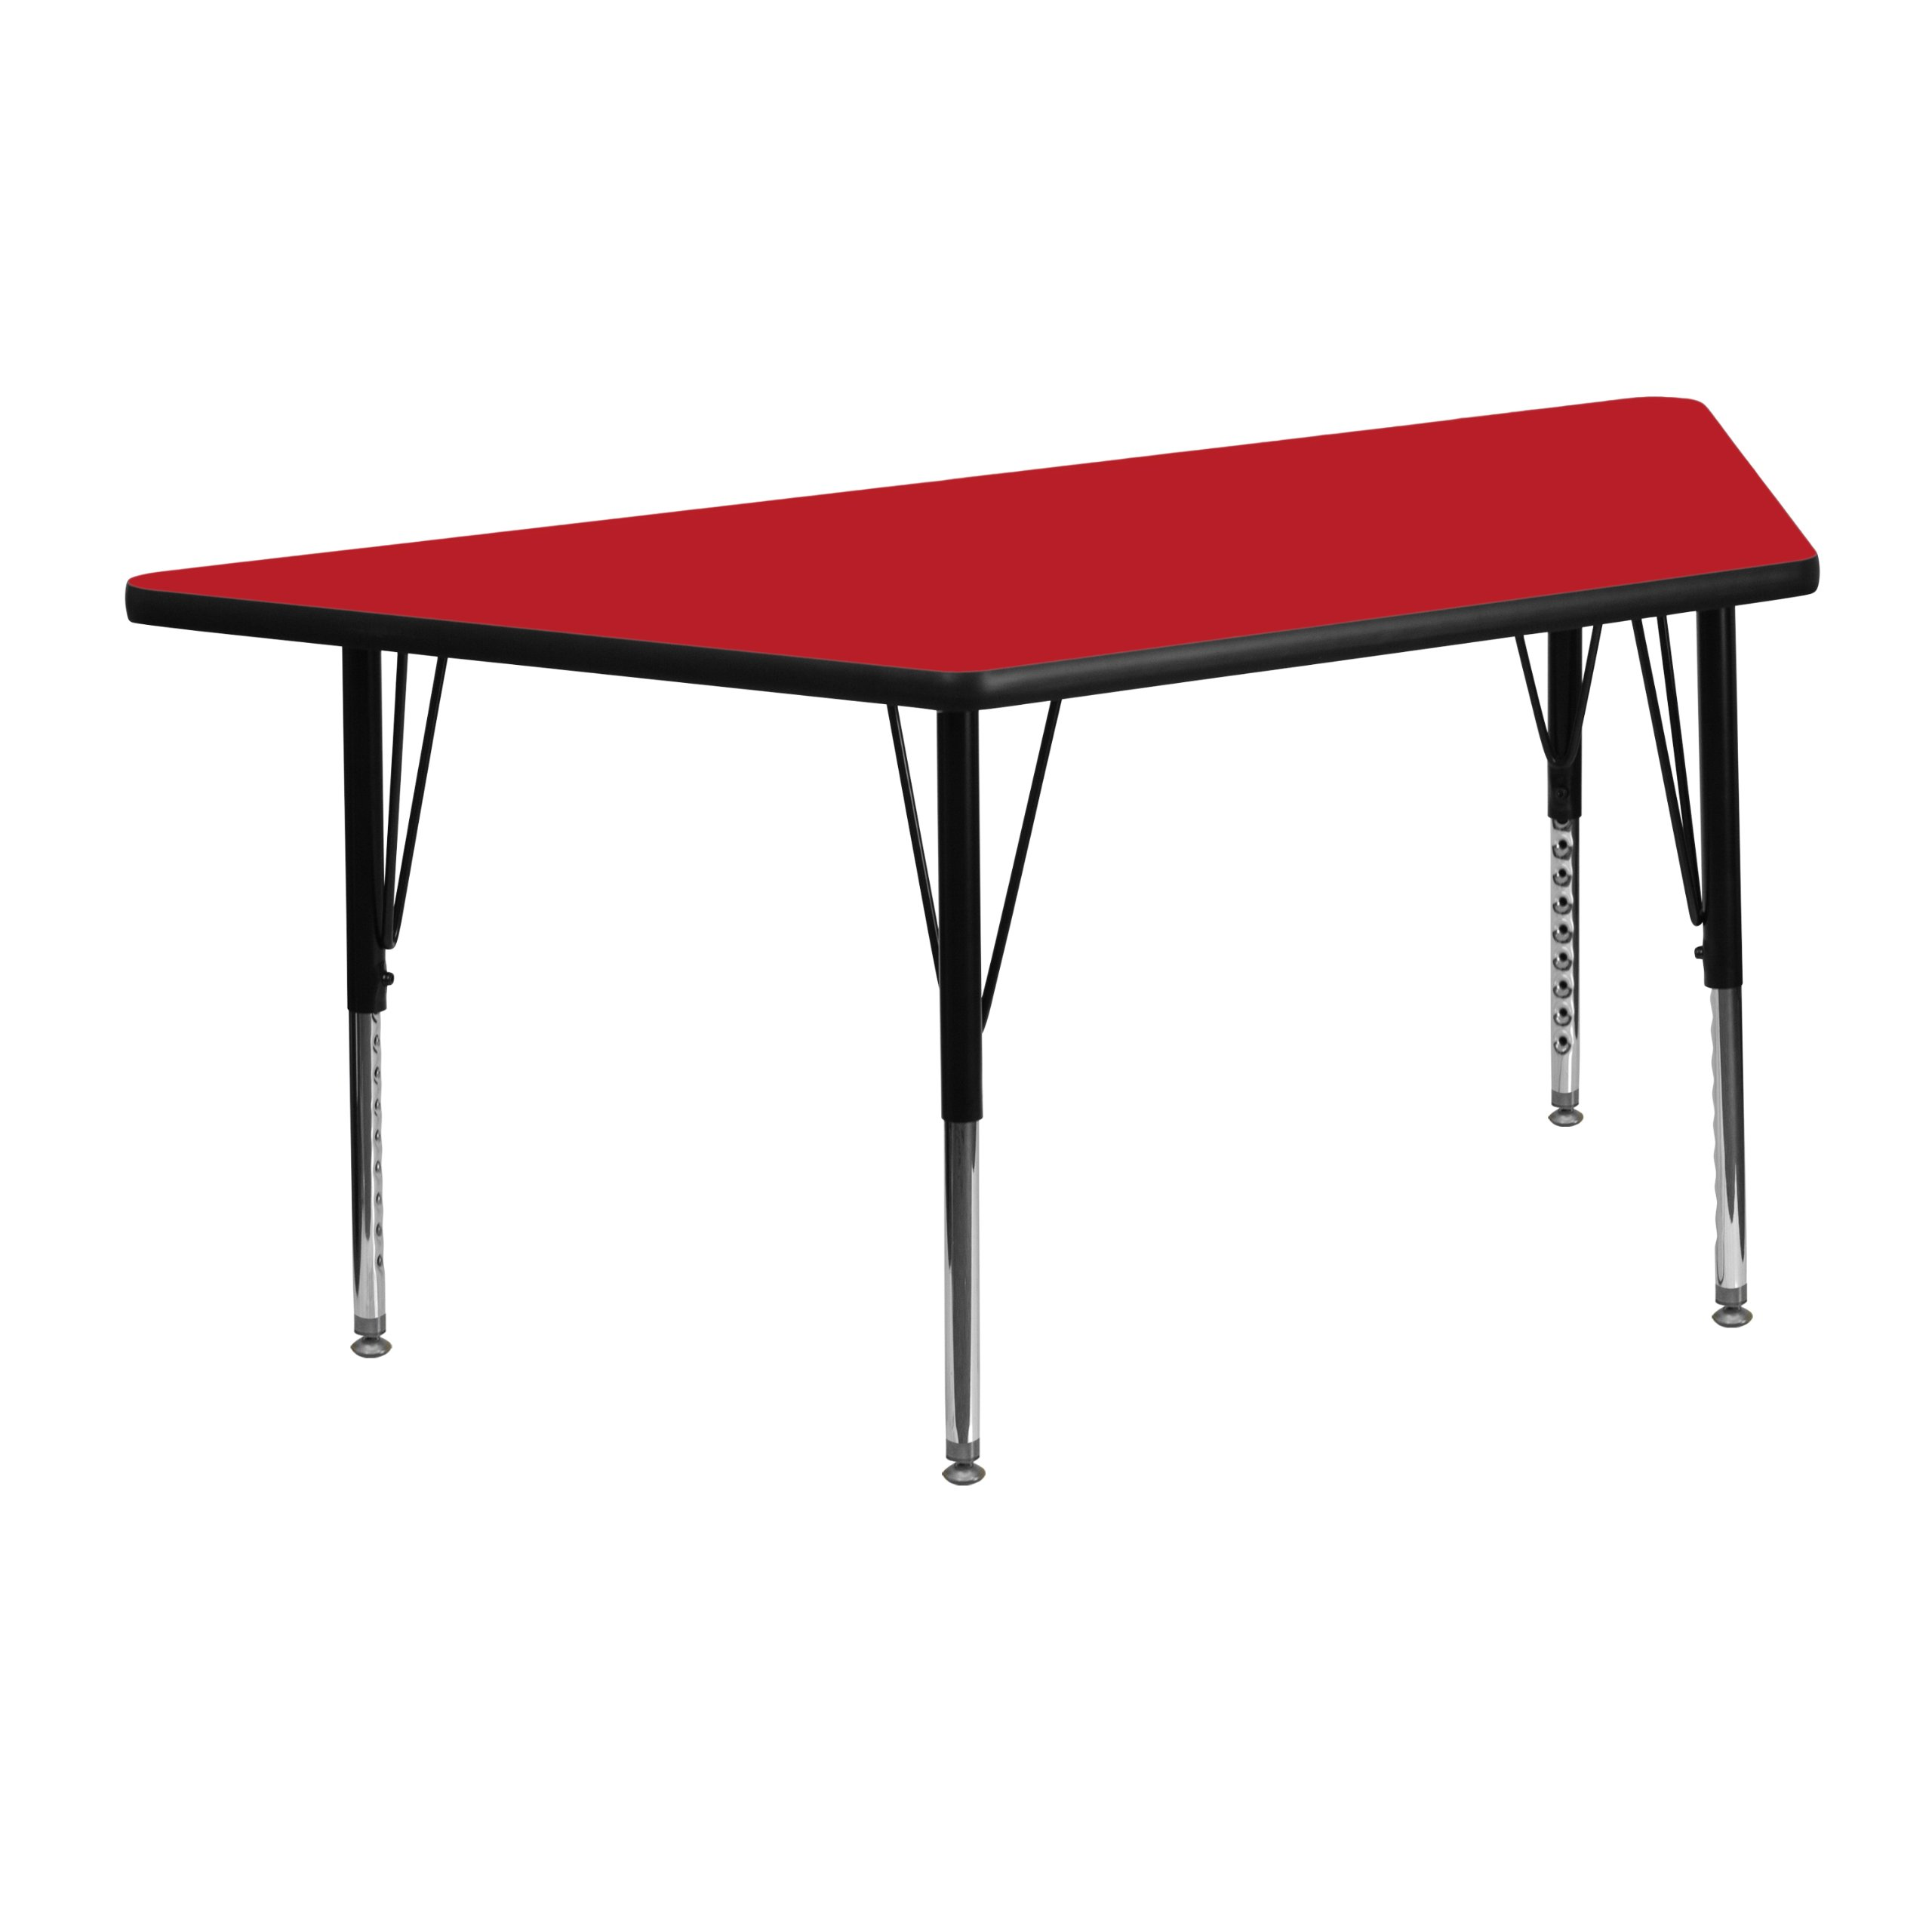 Flash Furniture 25.5''W x 46.25''L Trapezoid Red HP Laminate Activity Table - Height Adjustable Short Legs